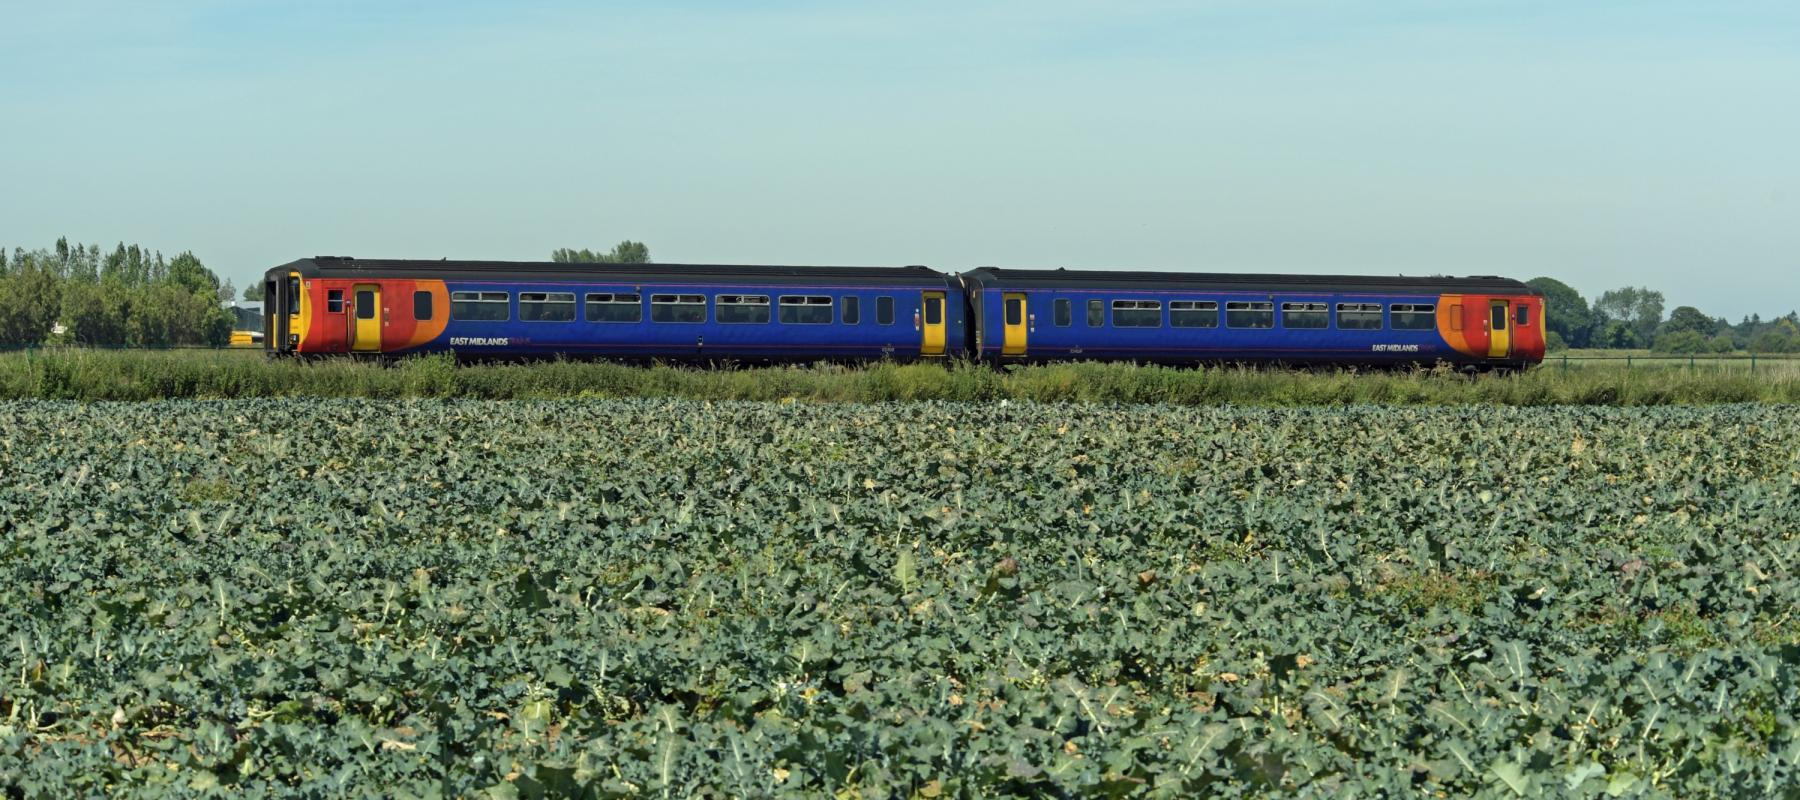 Train passing through farmland along the Poacher Line